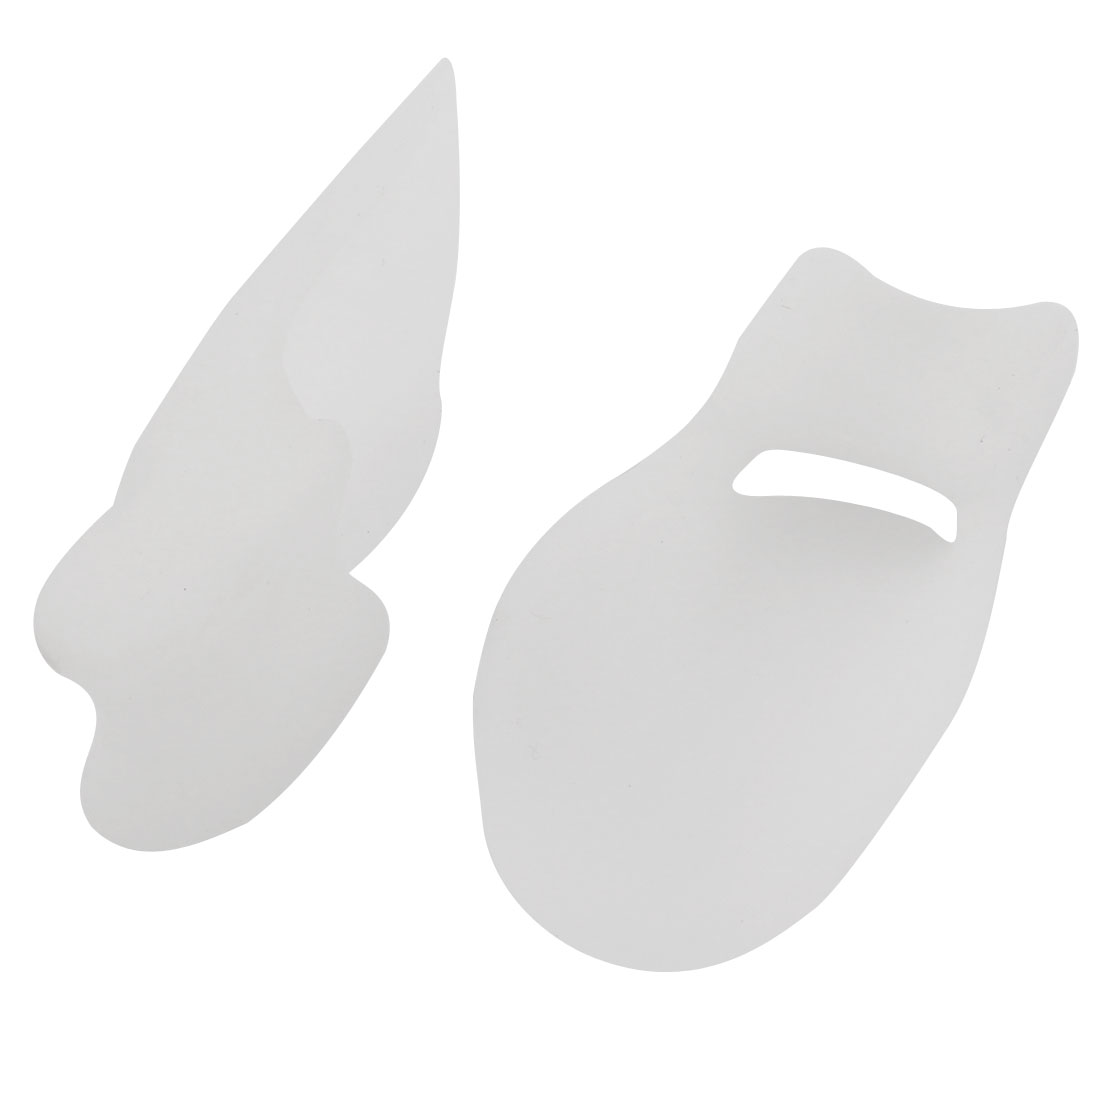 2 Pcs Unisex White Silicone Gel Toe Bunion Spreaders Ease Pain Relief Foot Care